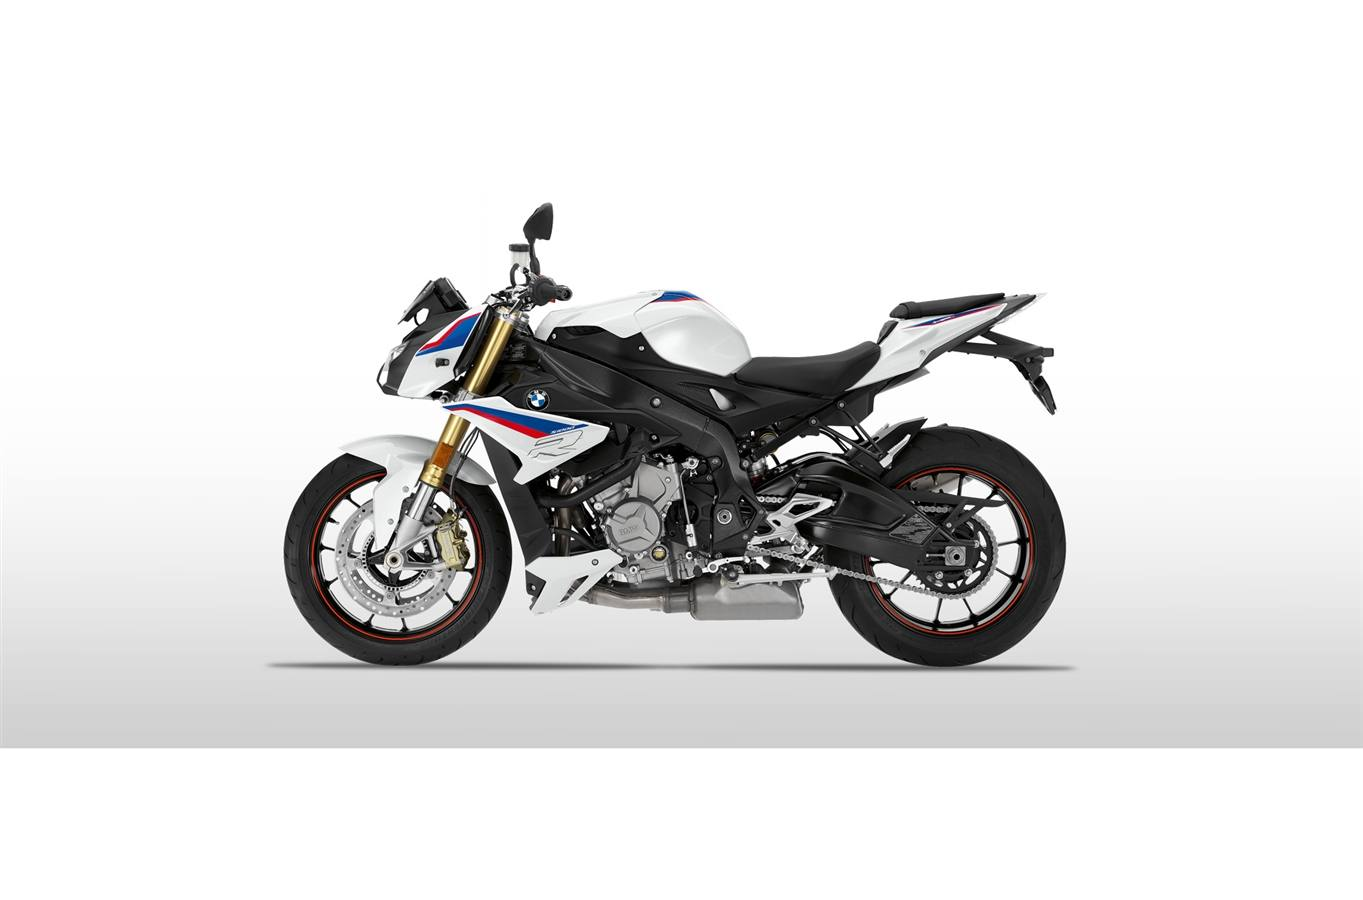 Astonishing 2019 Bmw S 1000 R Hp Style For Sale In Roseville Ca As Spiritservingveterans Wood Chair Design Ideas Spiritservingveteransorg